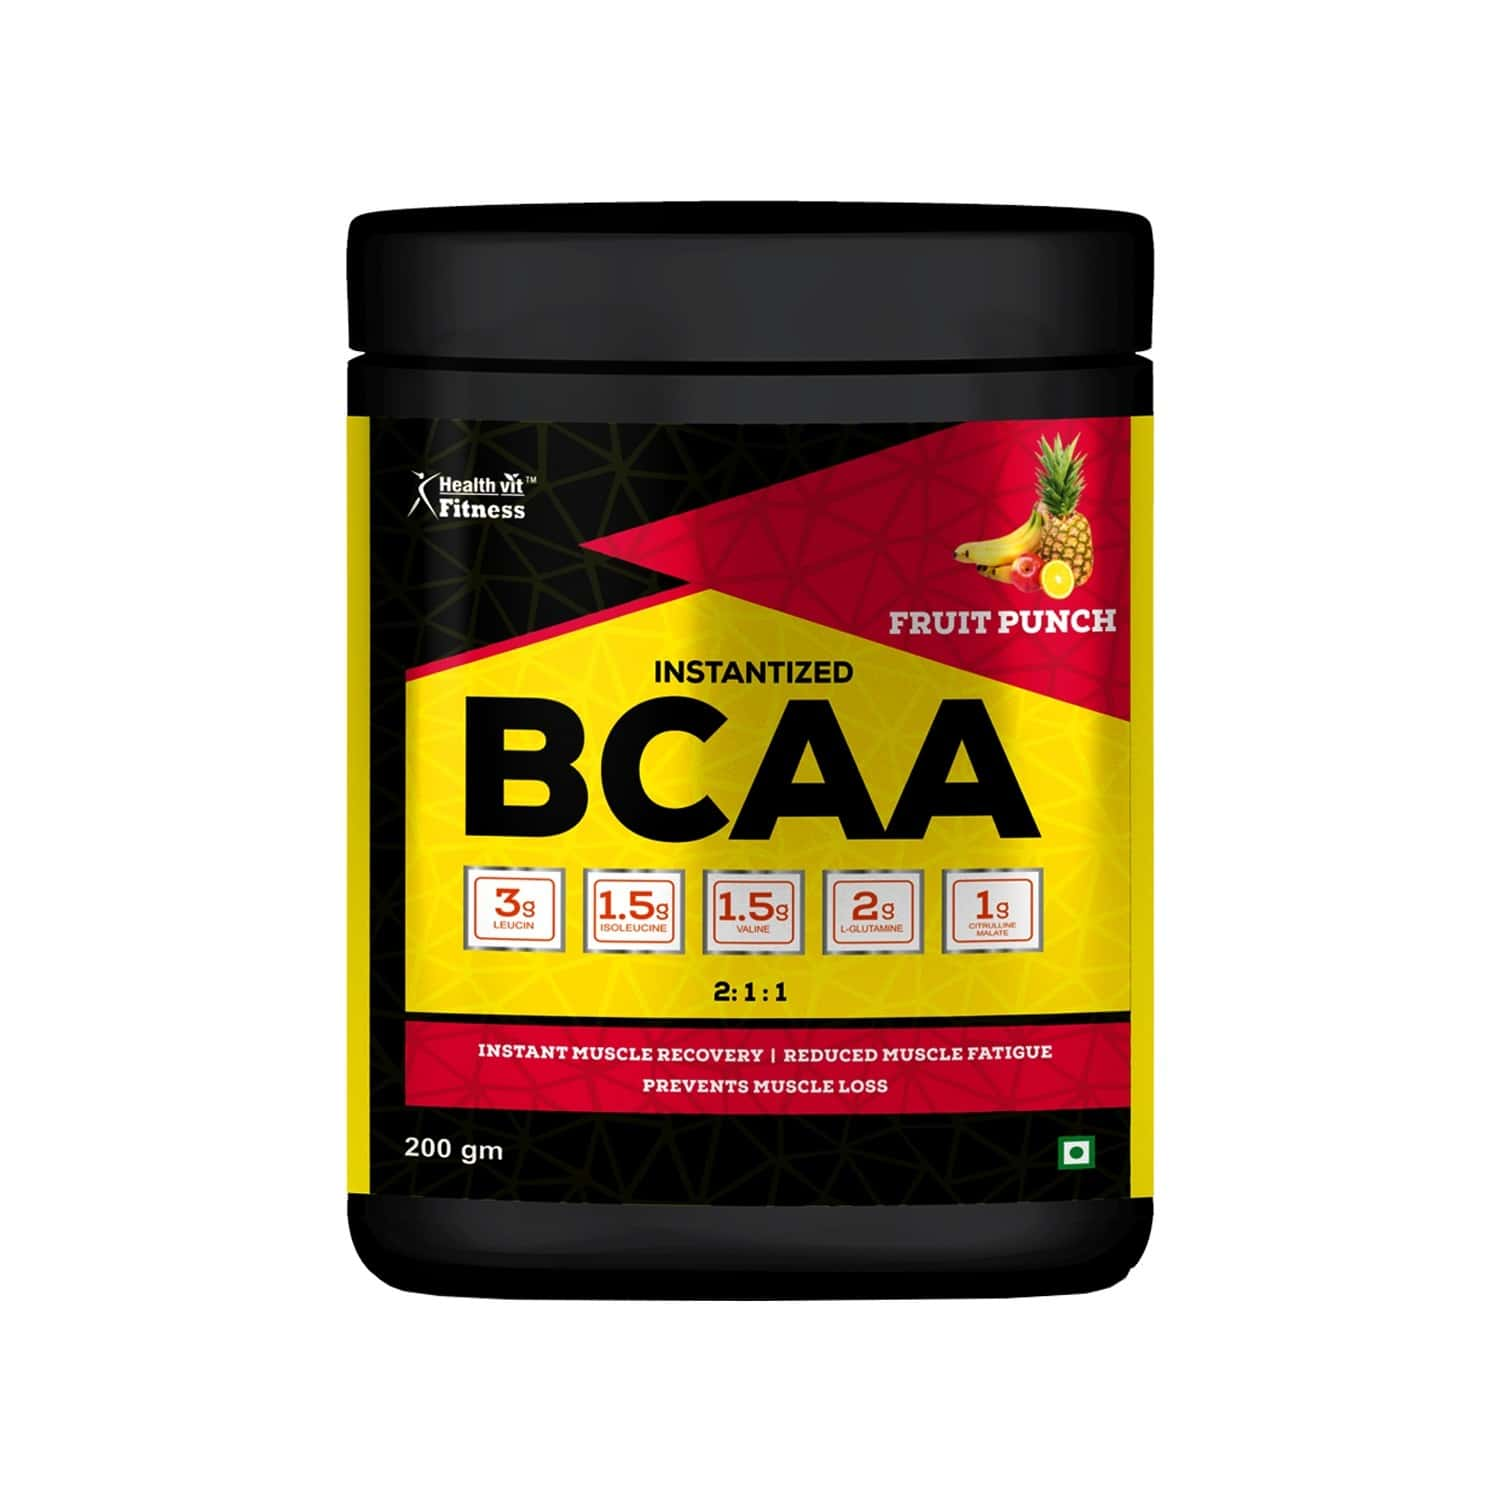 Healthvit Fitness Bcaa 6000mg 2:1:1 With L-glutamine & L - Citrulline Malate - Fruit Punch Flavour - 200gm